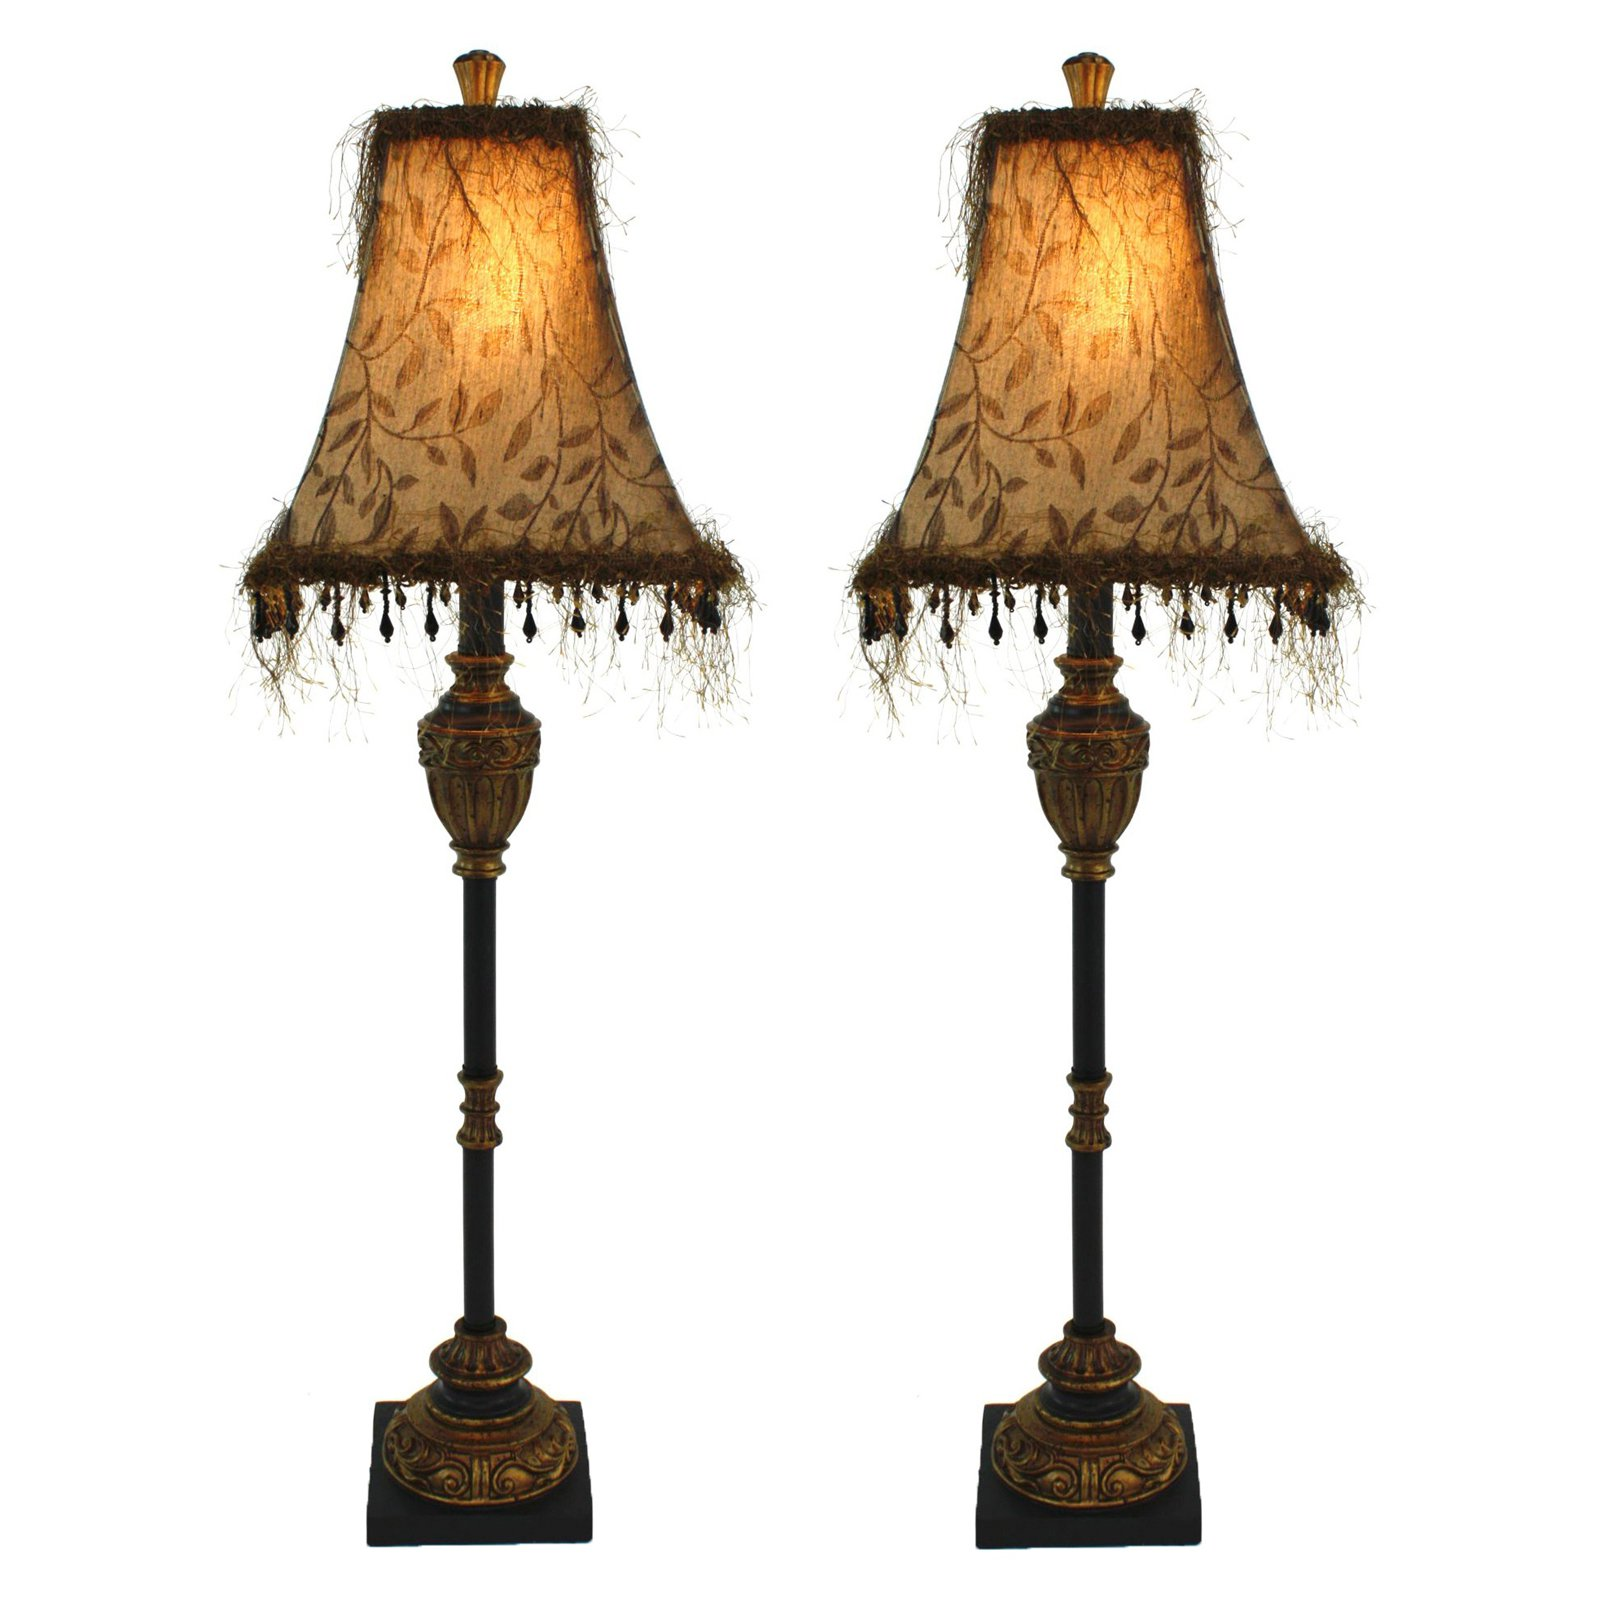 Aspire Home Accents Emelia Buffet Lamp - Set of 2